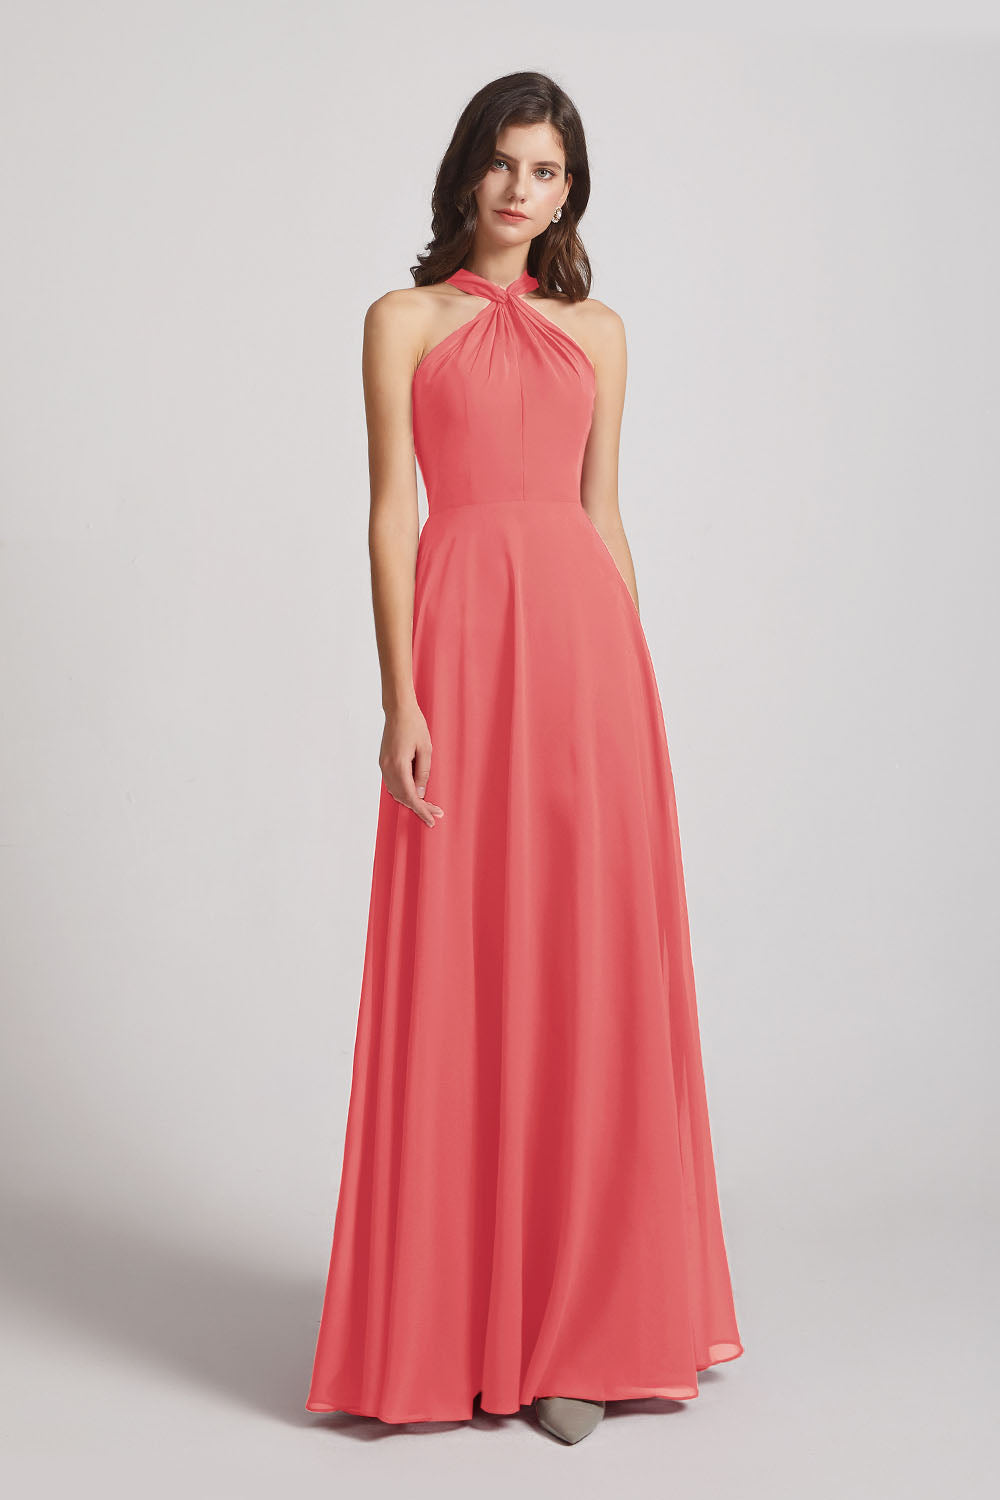 Alfa Bridal Desert Rose Floor Length Chiffon Bridesmaid Dresses with Criss Cross Neckline (AF0113)